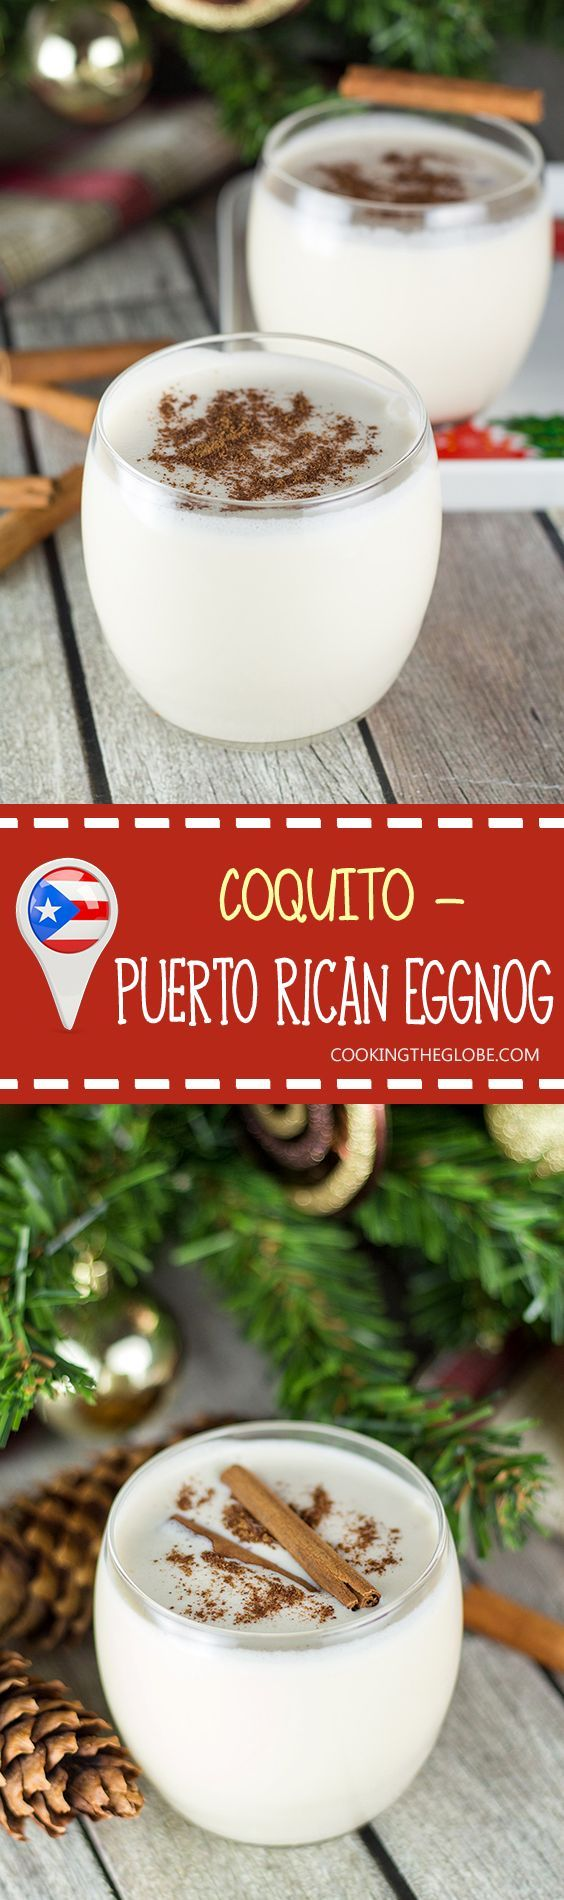 Learn how to make Coquito (Puerto Rican Eggnog) at home and make your Christmas or any other holiday unforgettable. Rich, creamy, boozy! | http://cookingtheglobe.com